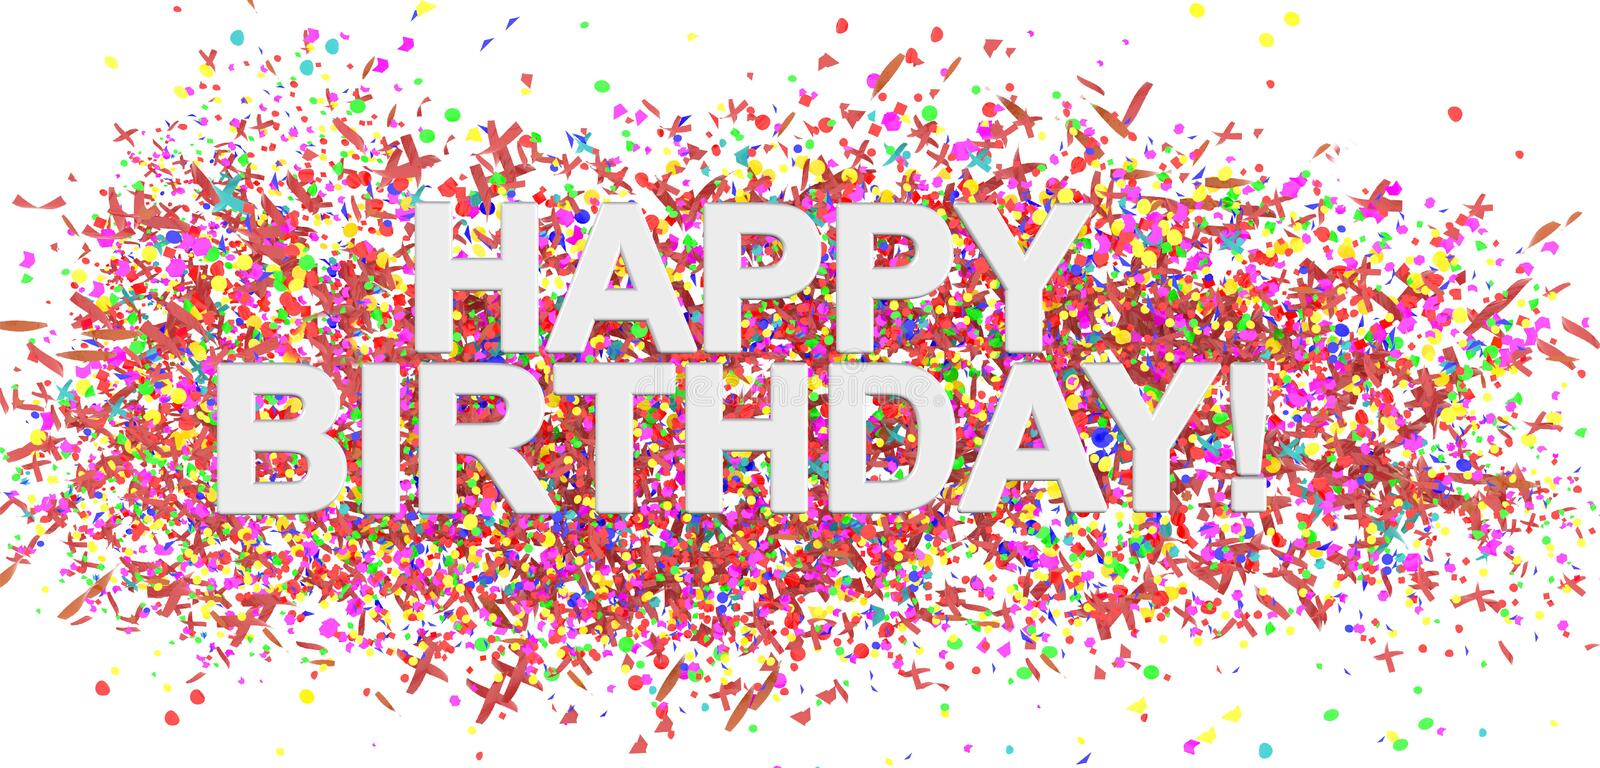 Happy birthday, text word party confeti decoration background colors - 3d rendering royalty free illustration